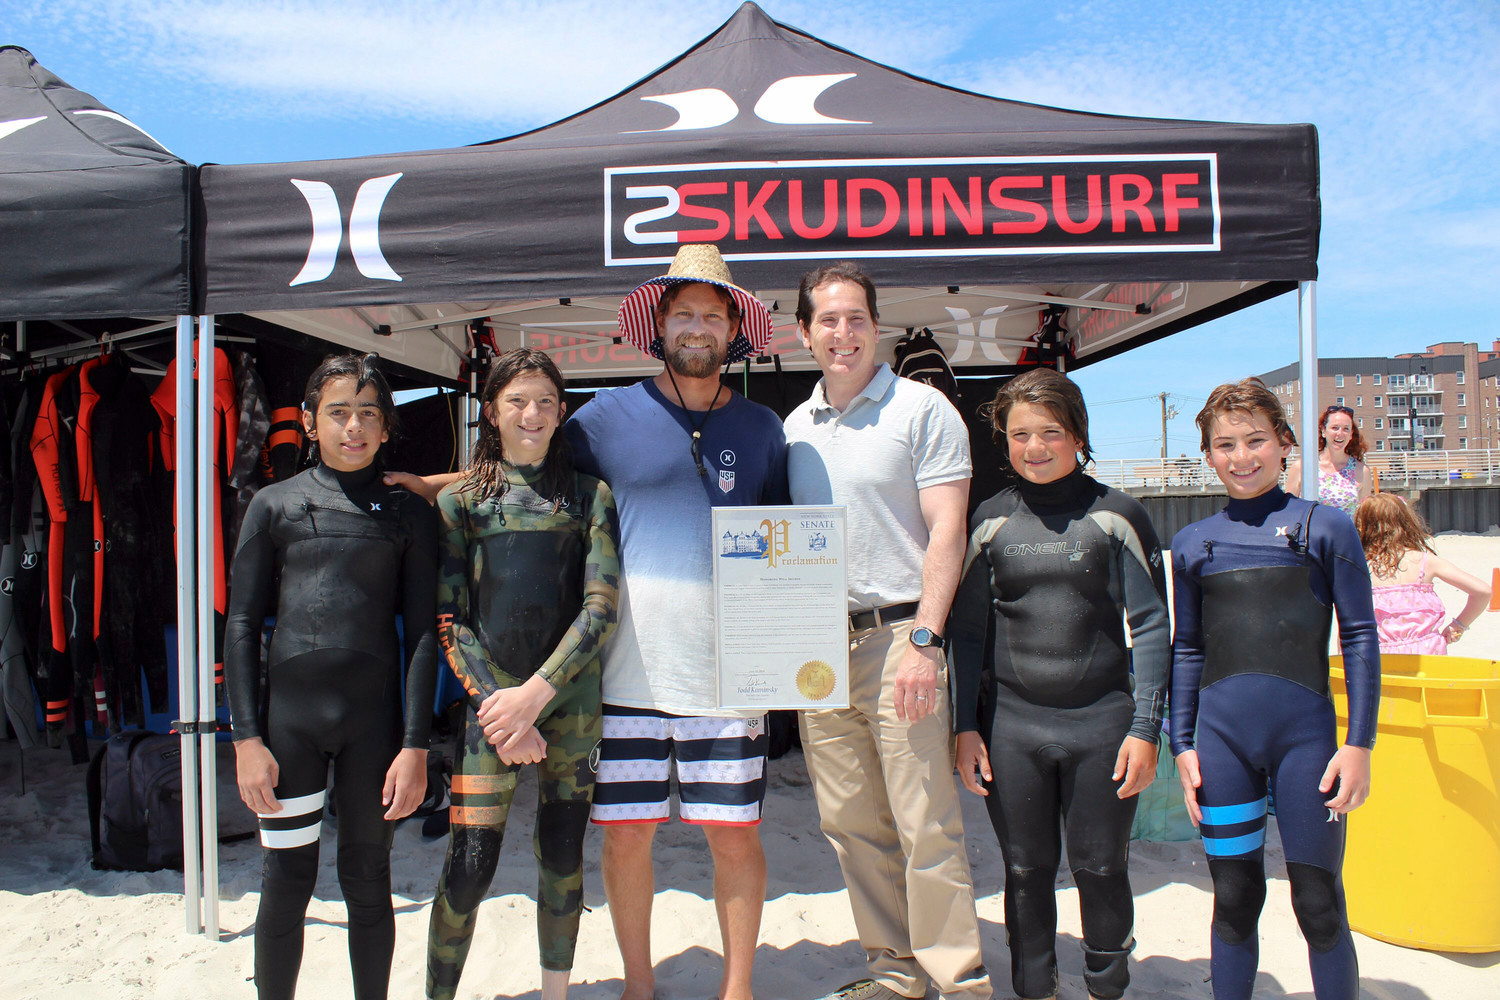 Pro big-wave surfer Will Skudin, third from left, was honored by State Sen. Todd Kaminsky, center, for making the 2018-19 World Surf League's Big Wave World Tour.